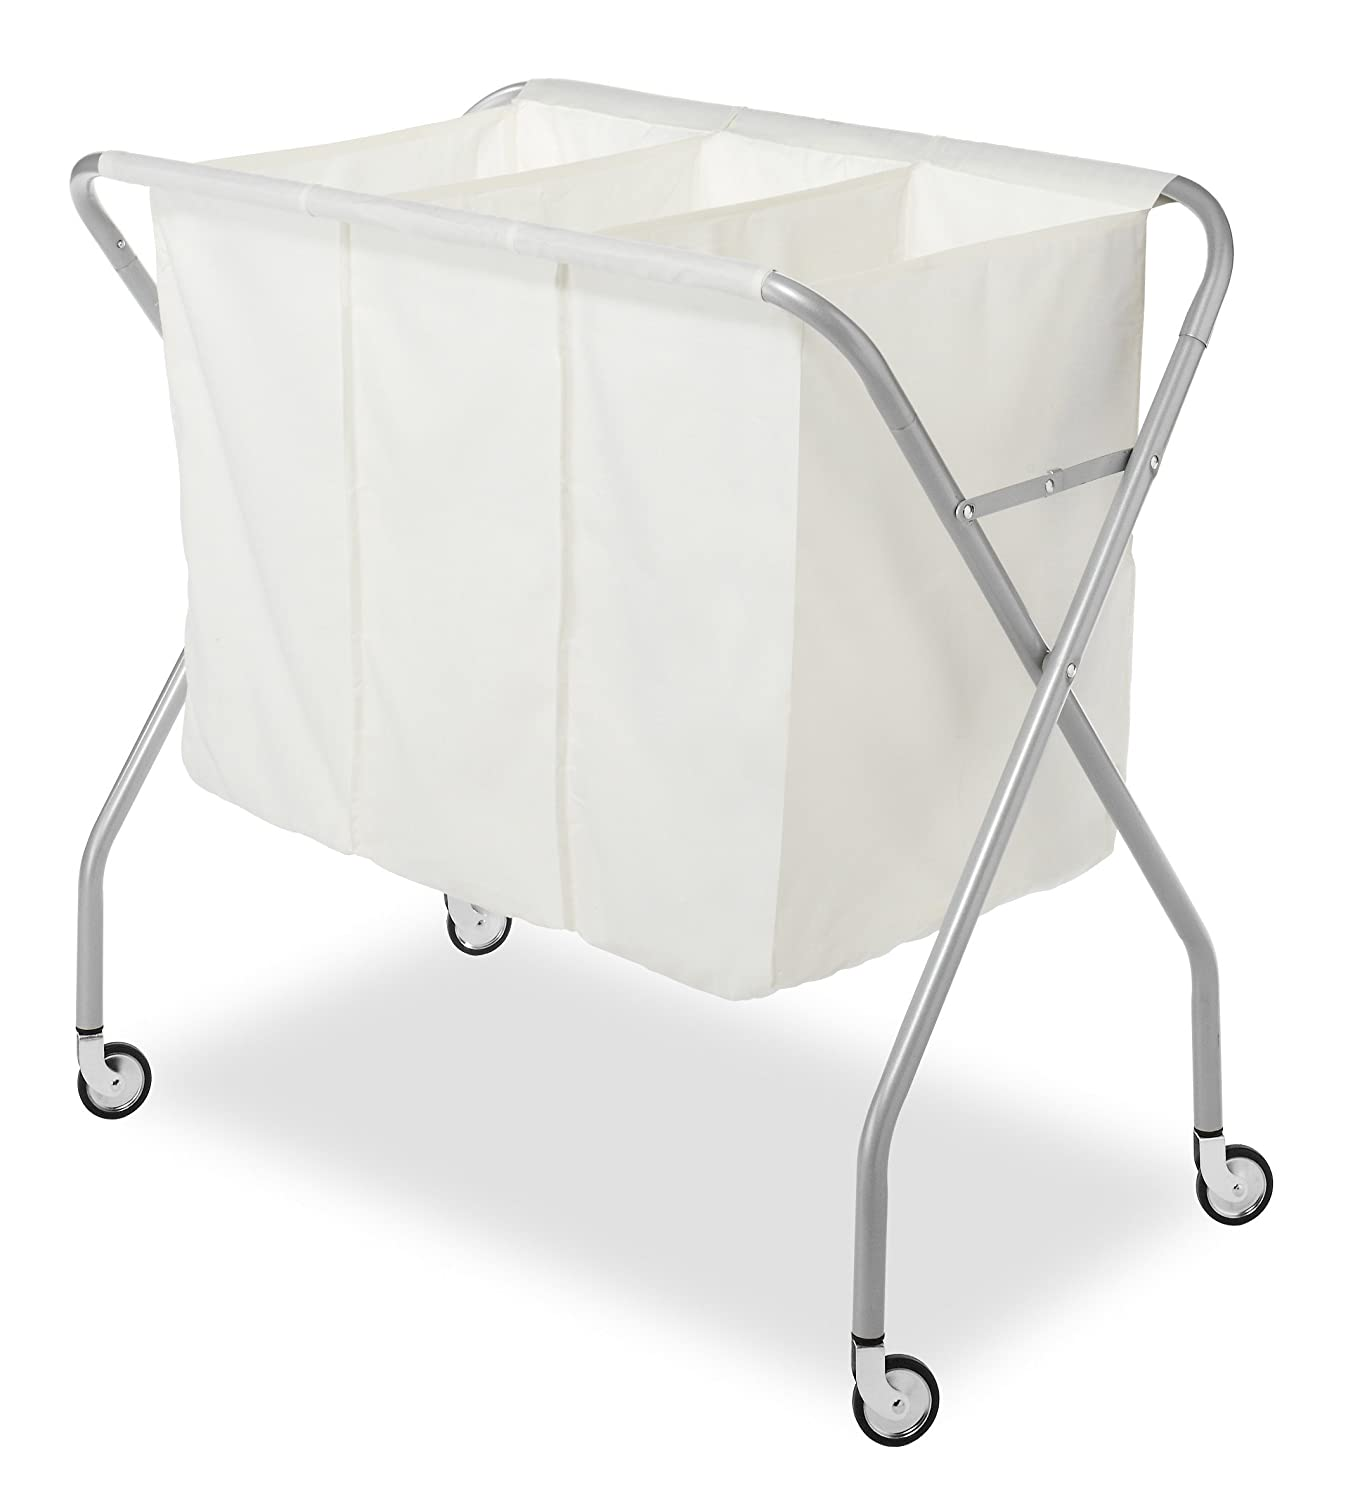 Whitmor 3 Section Laundry Sorter - Collapsible with Heavy Duty Wheels 6705-569